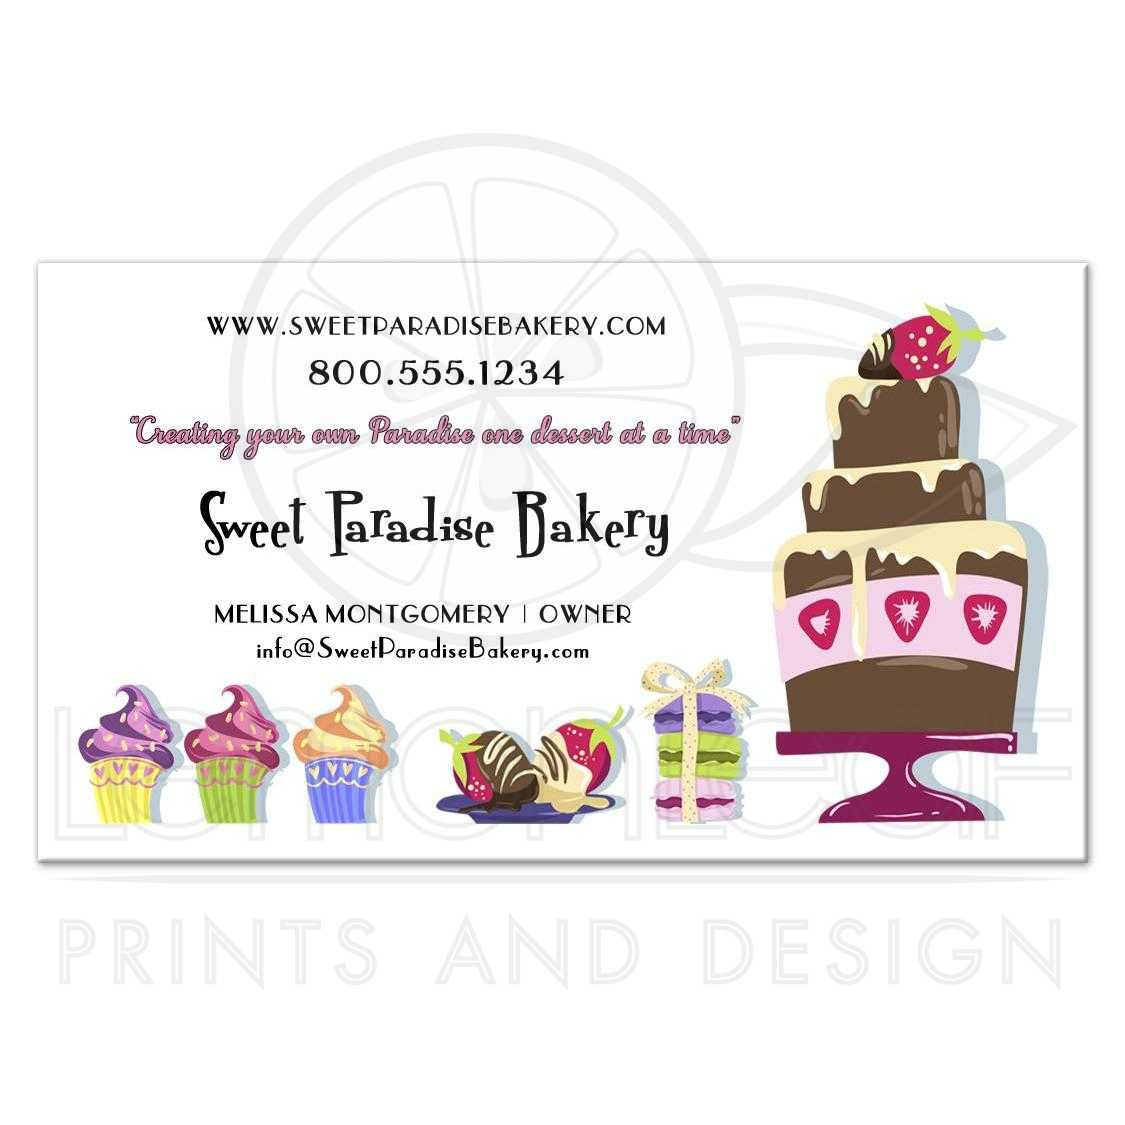 Adorable and fun sweet paradise professional bakery business cards reheart Choice Image